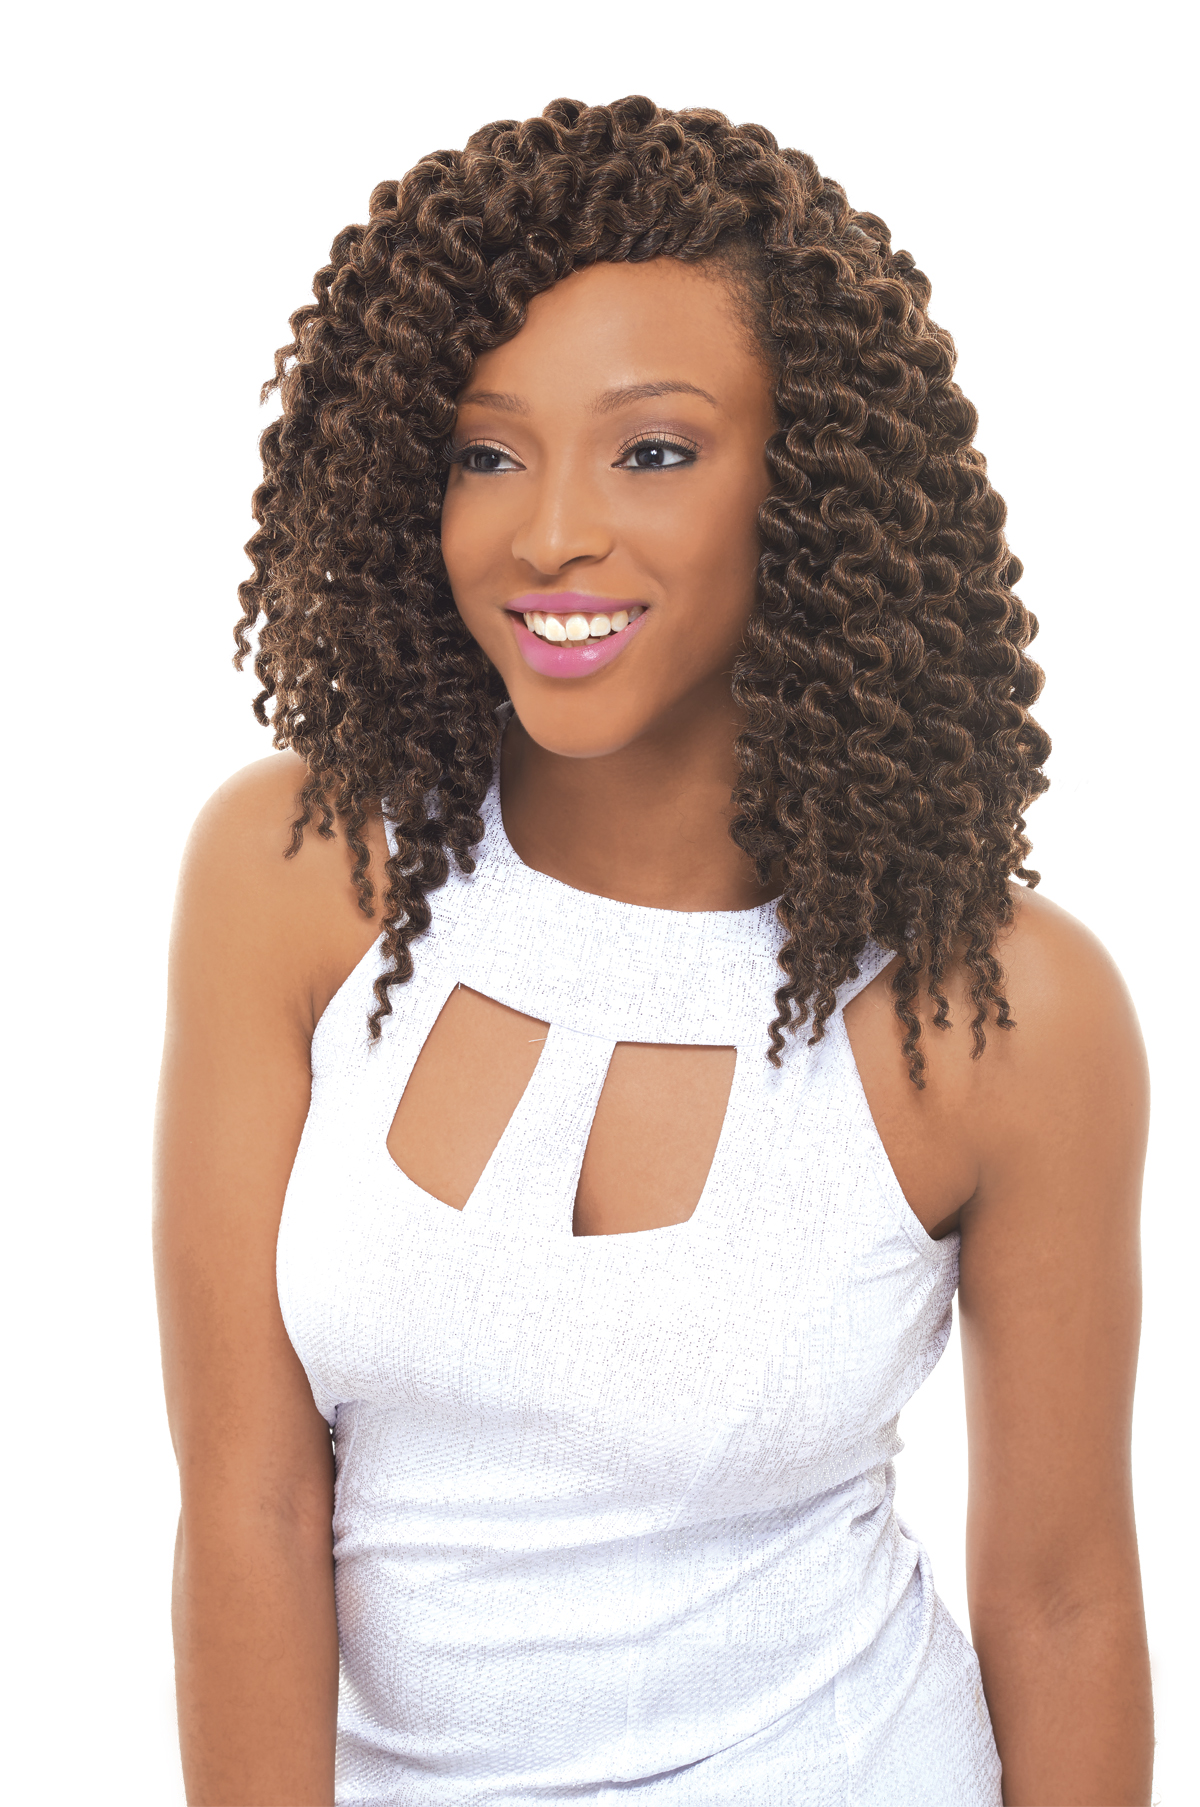 Crochet Braids With Janet Hair : ... > Hair Care & Styling > Hair Extensions & Wigs > Hair Ex...